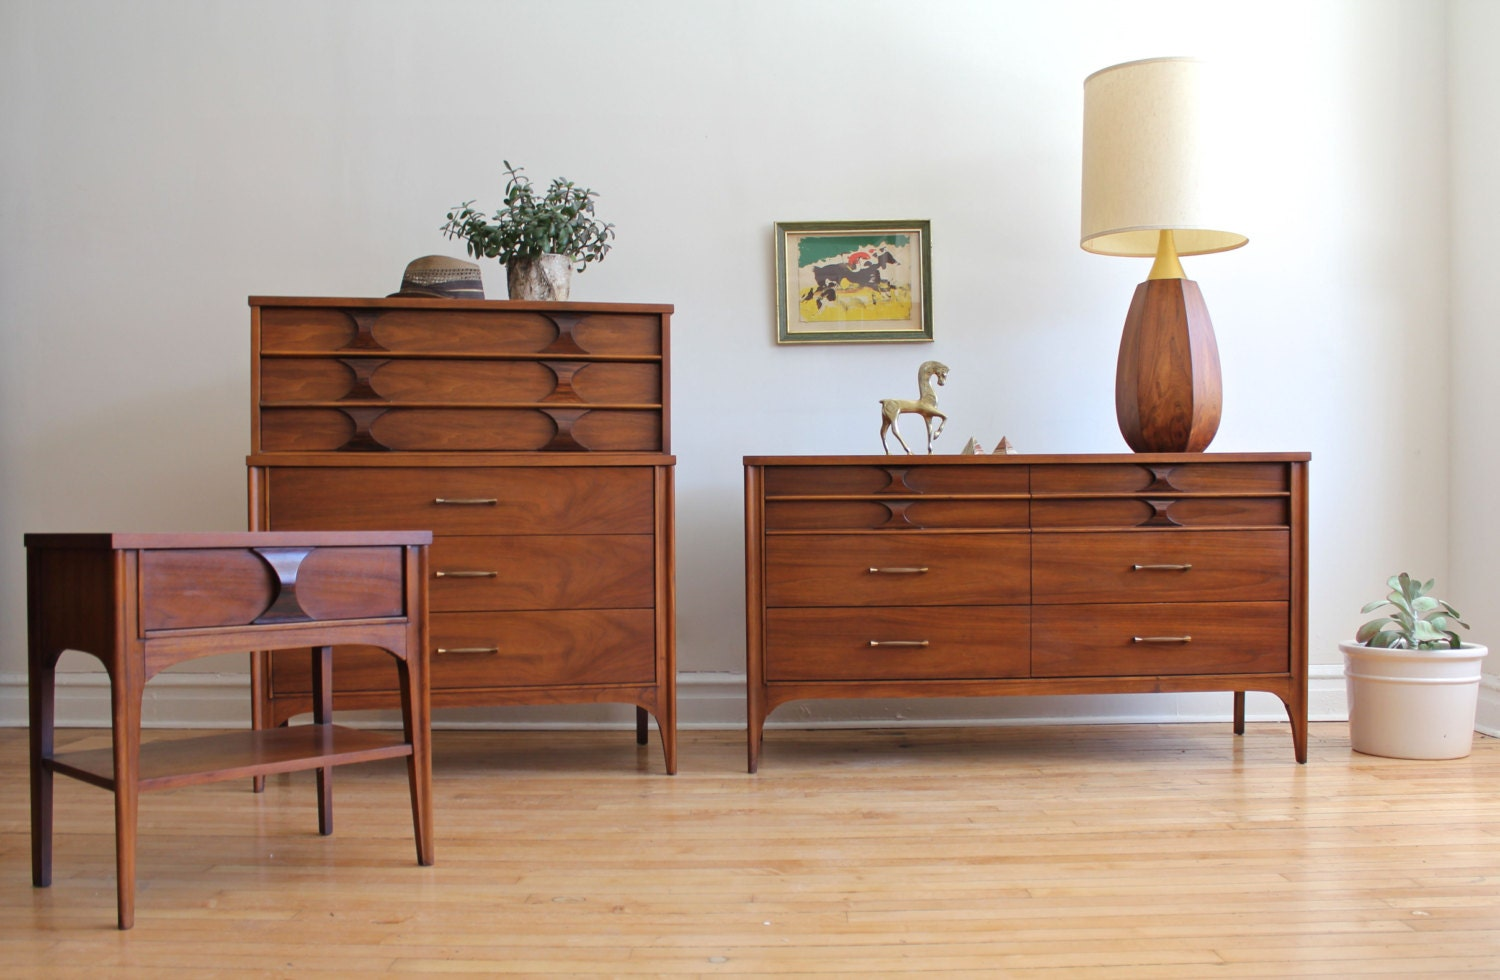 Kent coffey perspecta mid century modern bedroom set Mid century modern bedroom set